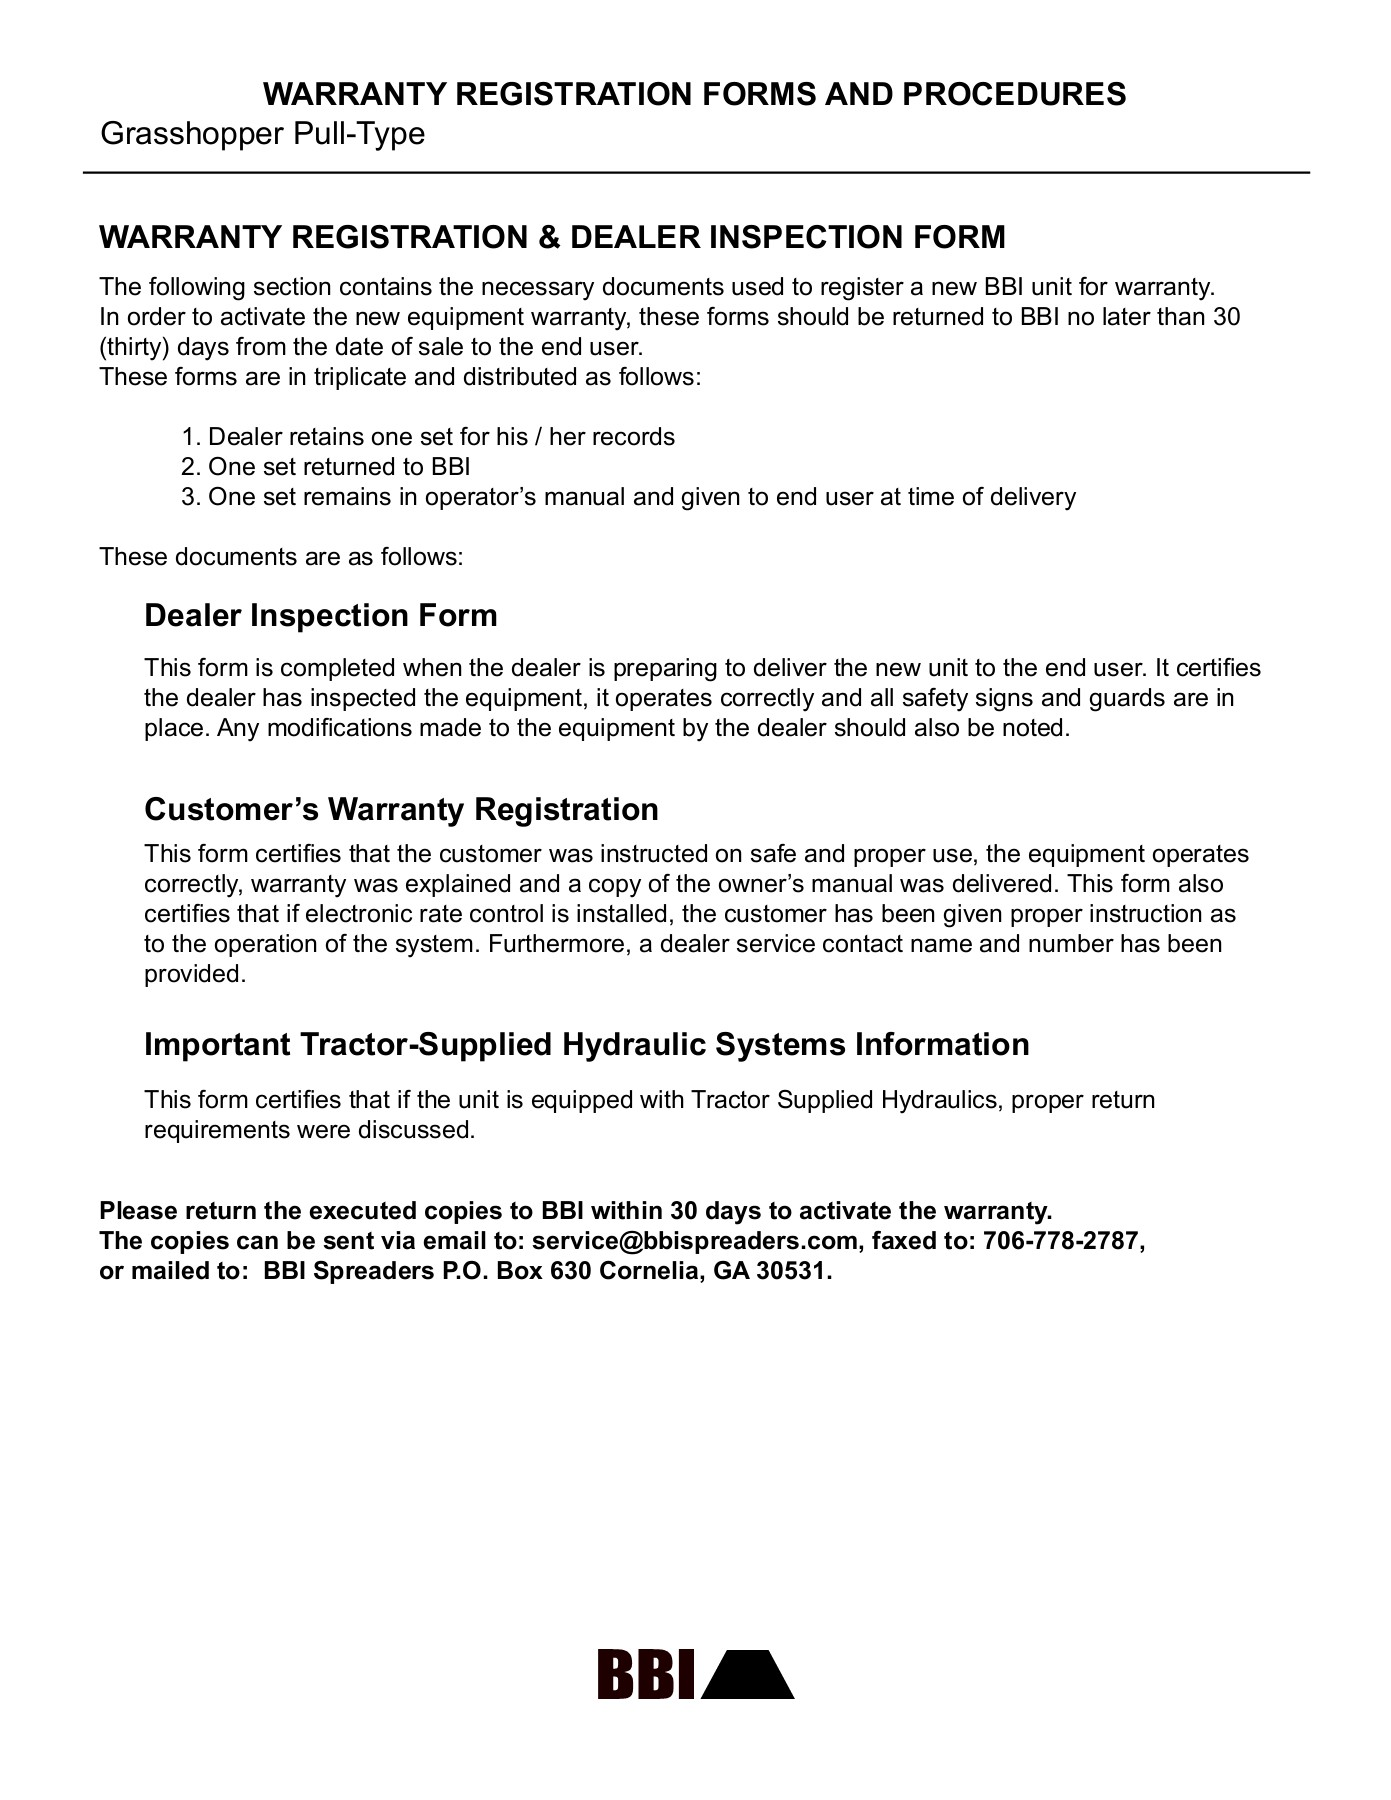 WARRANTY REGISTRATION FORMS AND PROCEDURES Grasshopper     Pages 1